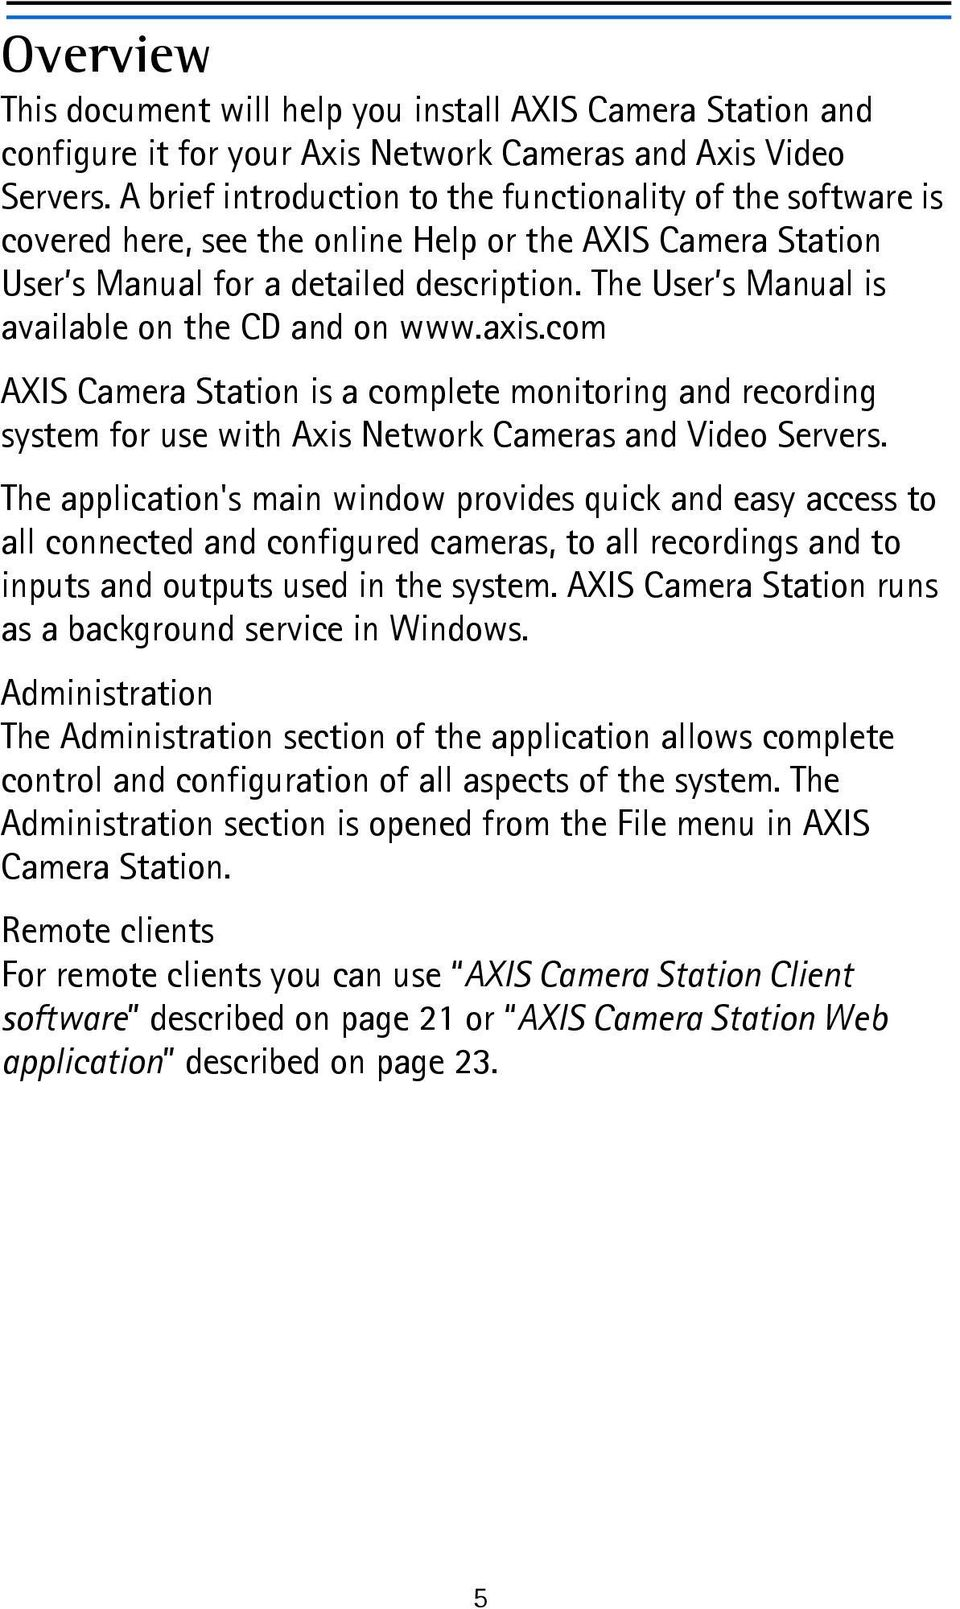 The User s Manual is available on the CD and on www.axis.com AXIS Camera Station is a complete monitoring and recording system for use with Axis Network Cameras and Video Servers.